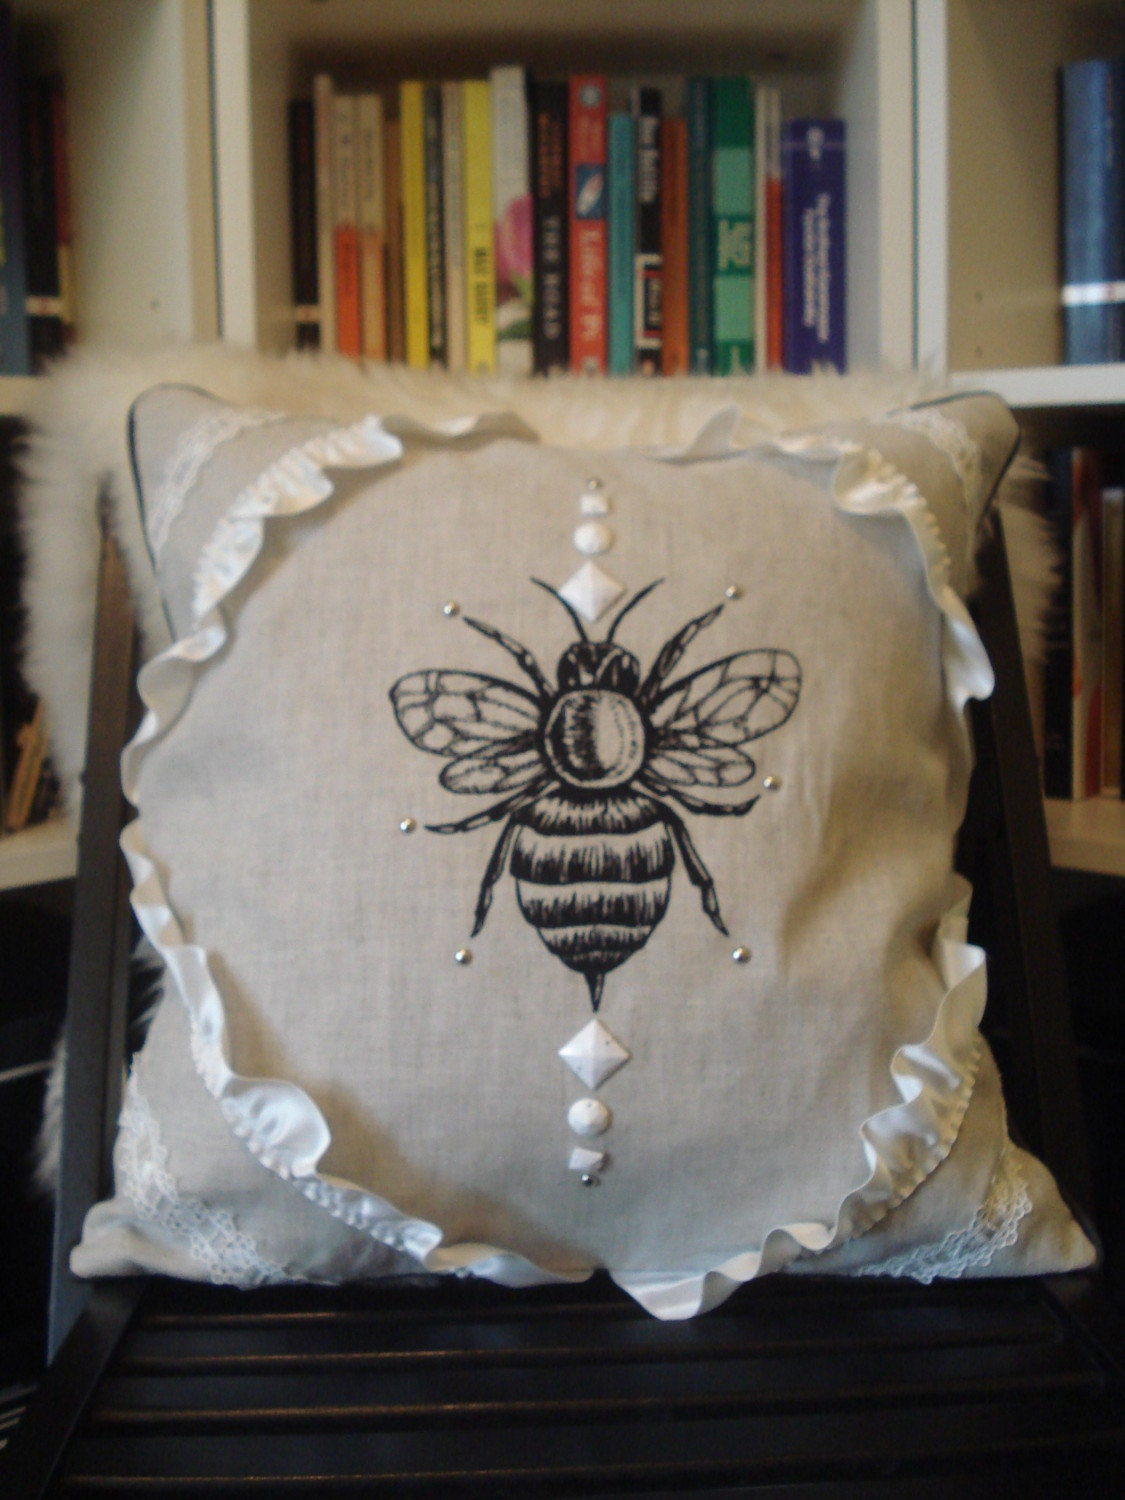 Linen and Cotton Bee Throw Pillow Cover by eva by evakatharina from etsy.com